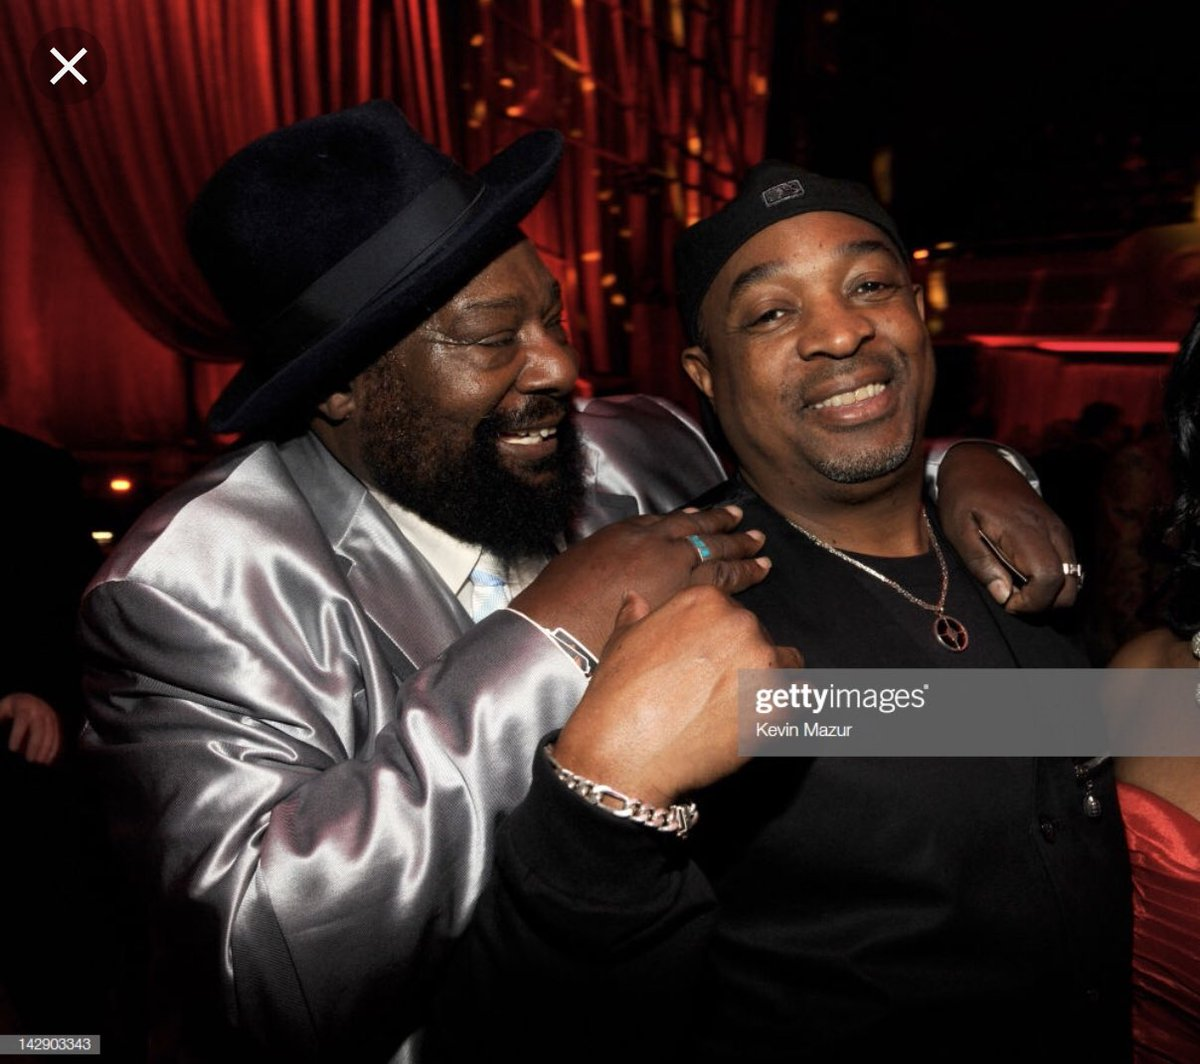 Most of us artists and producers all genres O W E Unc @george_clinton S O M E T H I N G Hap78<br>http://pic.twitter.com/Q0Z23C4GZ2